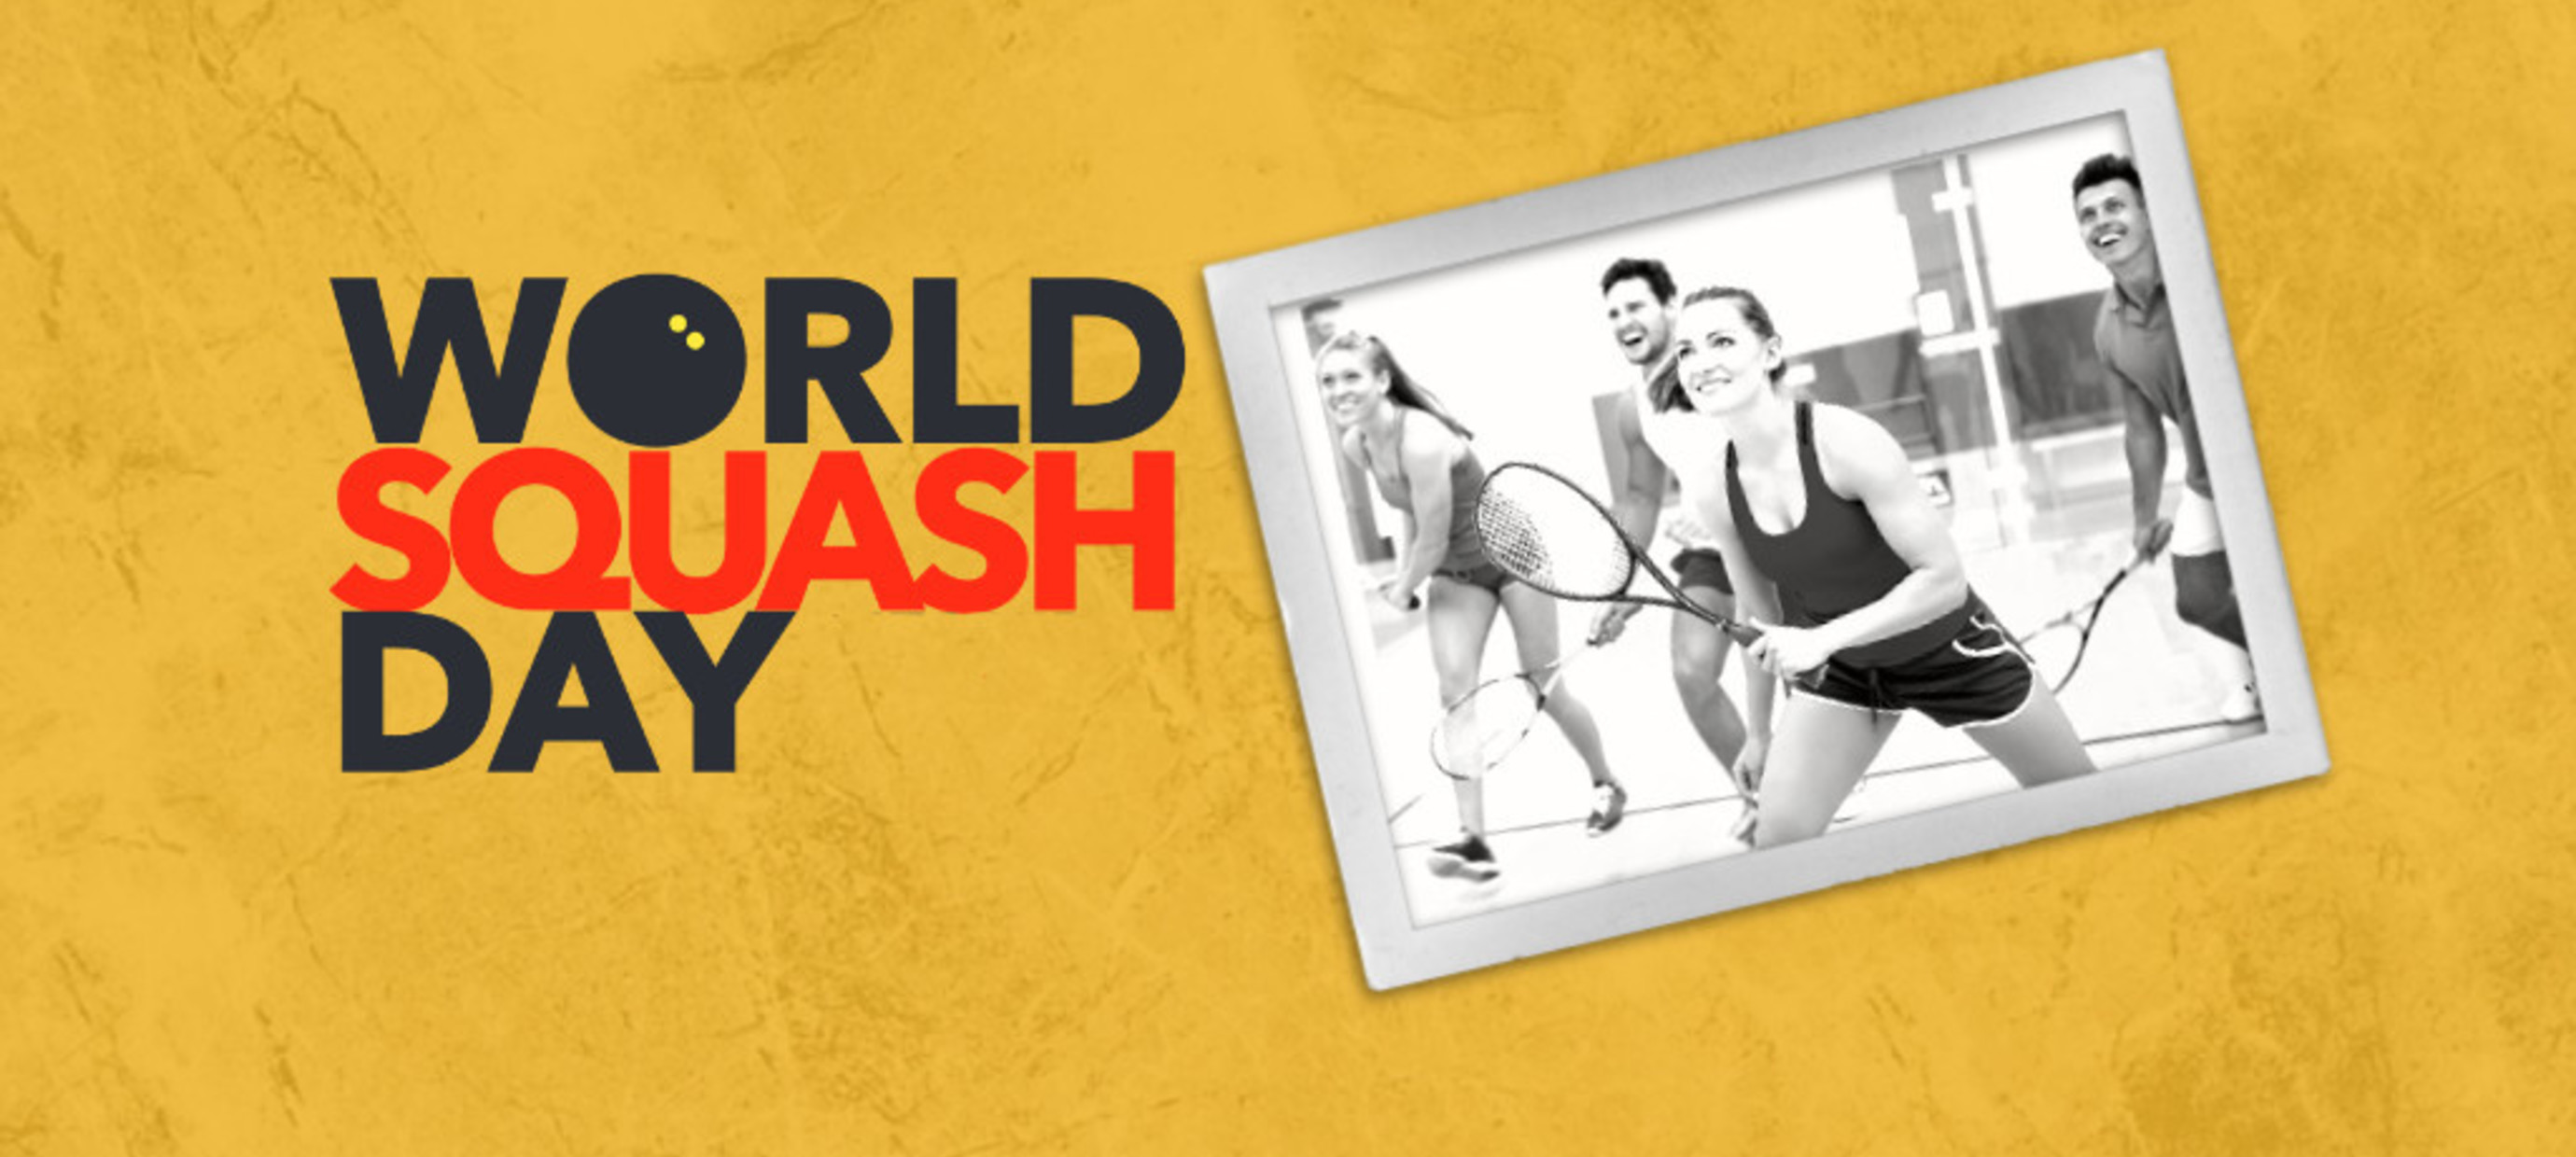 How did World Squash Day start?